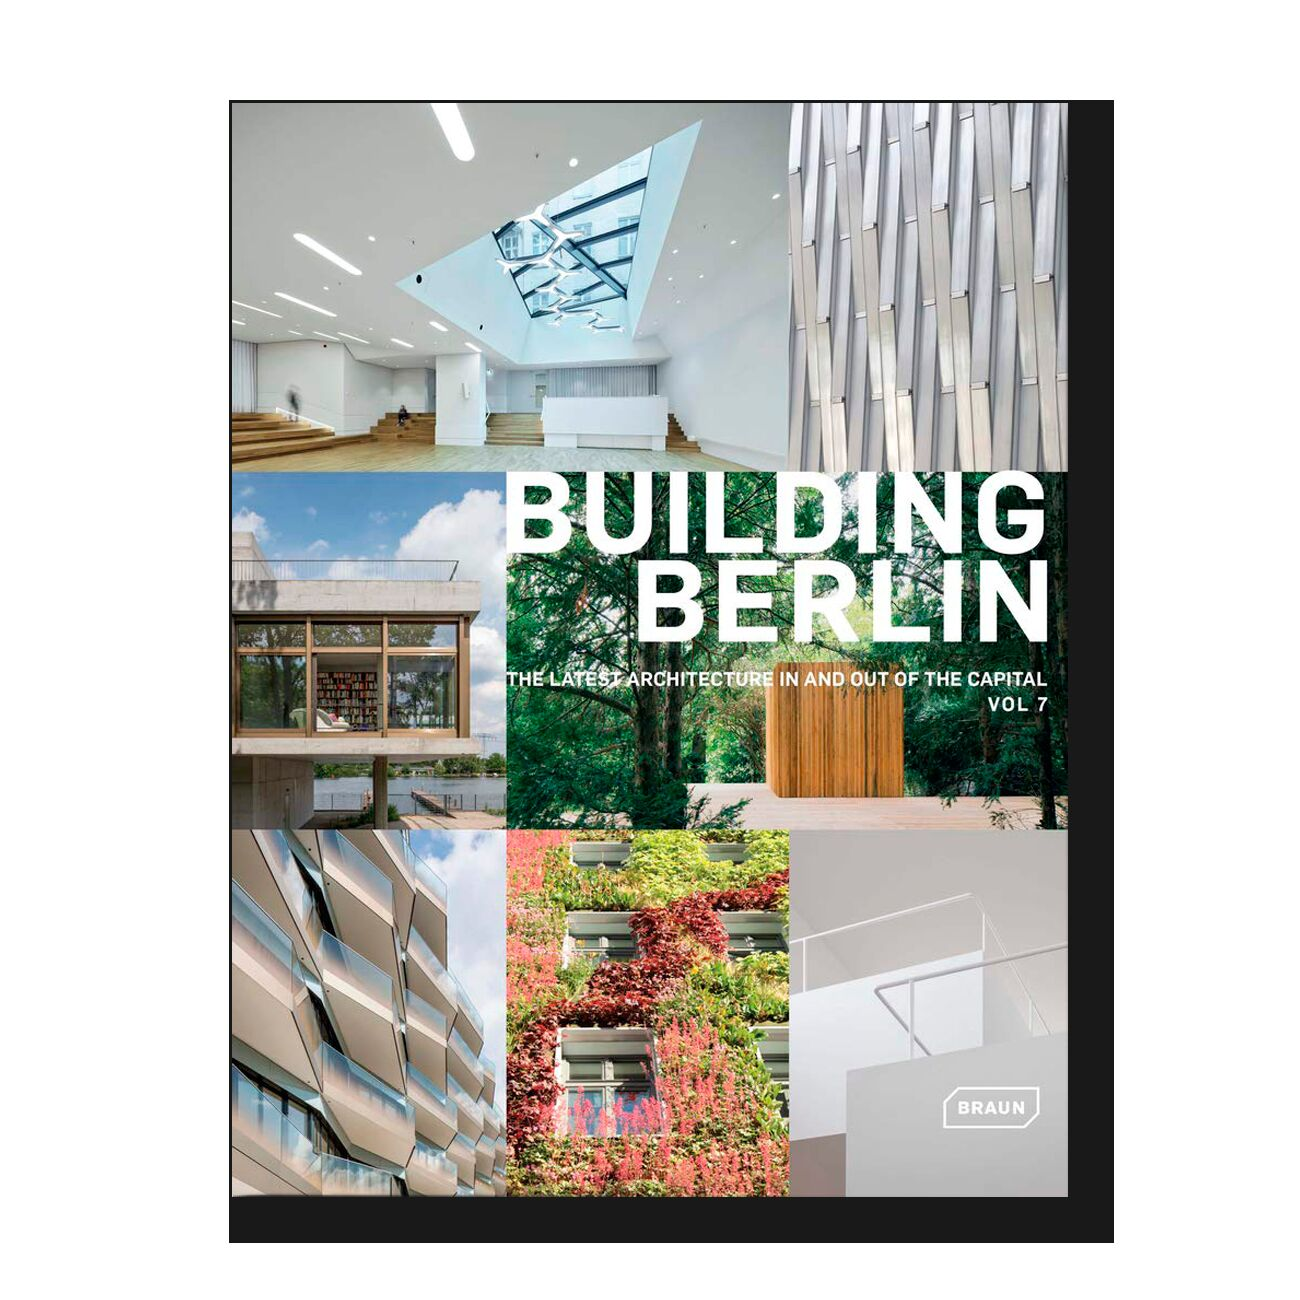 Building Berlin, Vol. 7: The Latest Architecture In and Out of the Capital